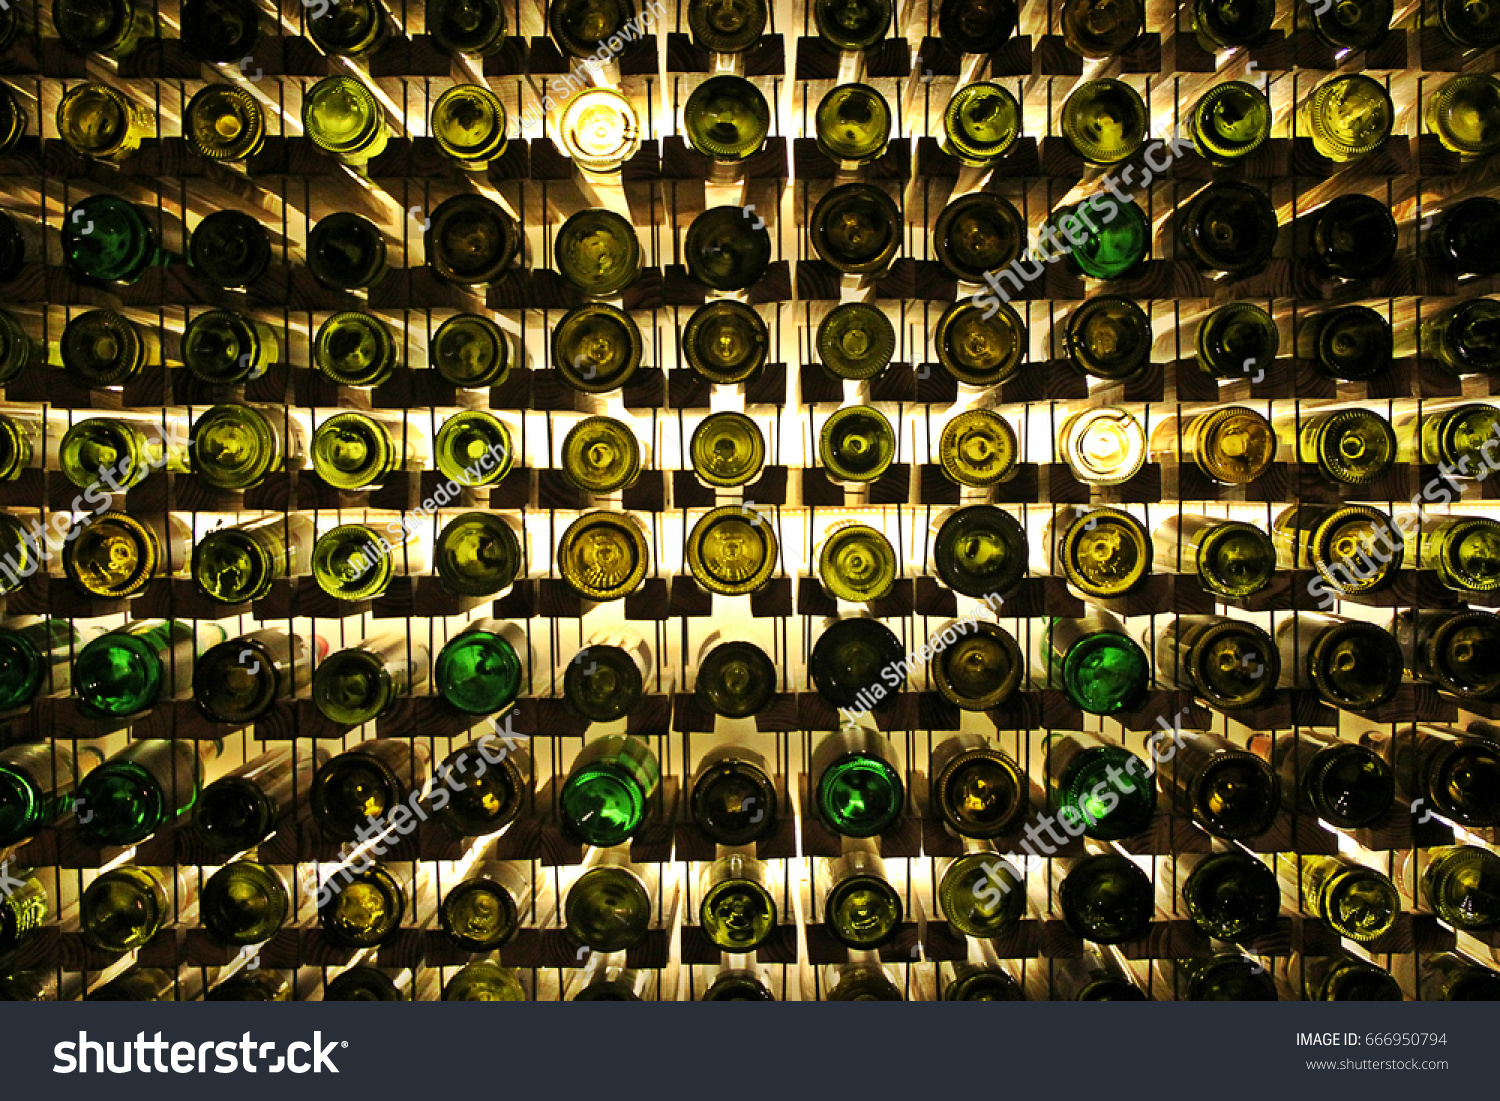 Many glass wine bottles on wine shelves with lighting. Interior in the restaurant.  Color photo